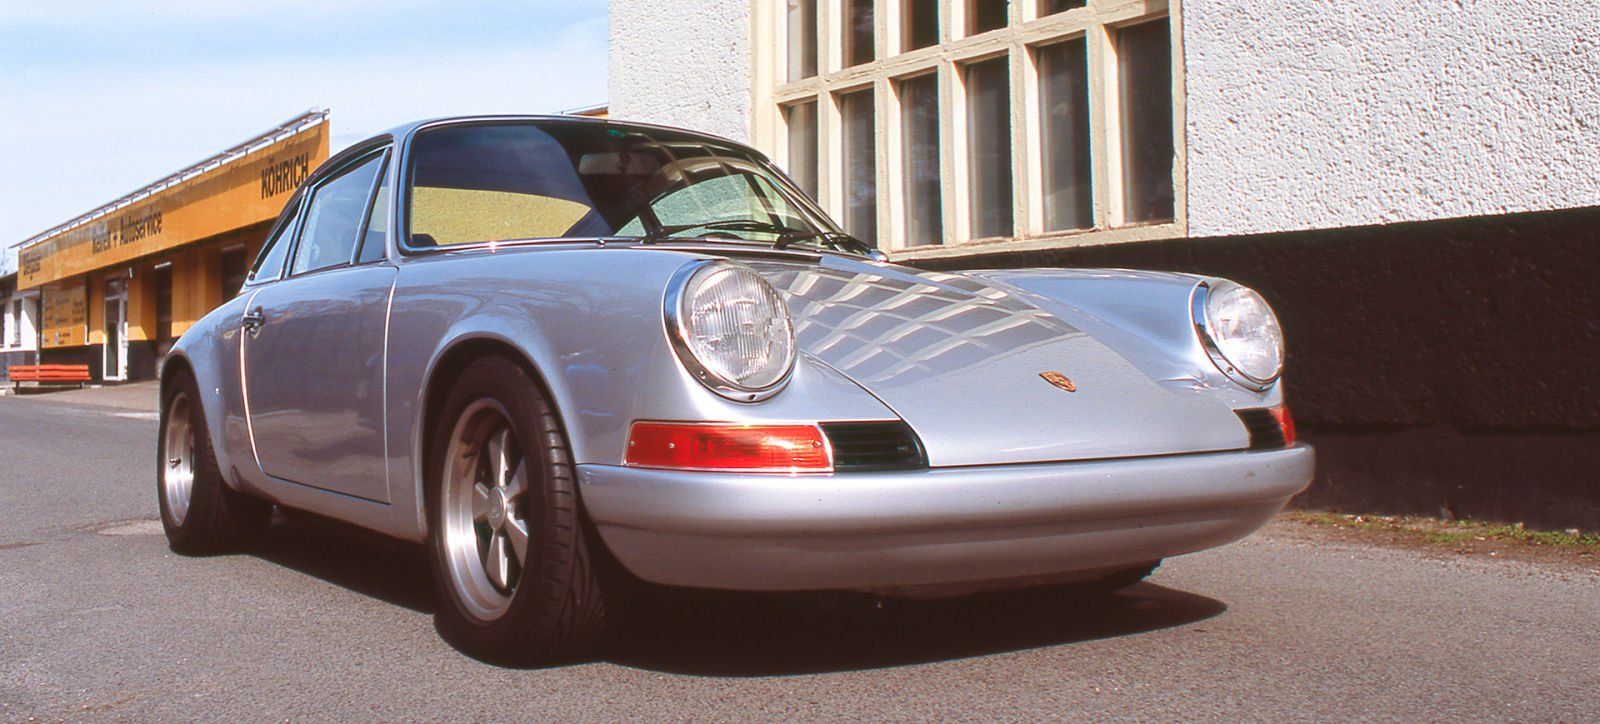 Porsche 911 Backtrack - The world's most secret Porsche